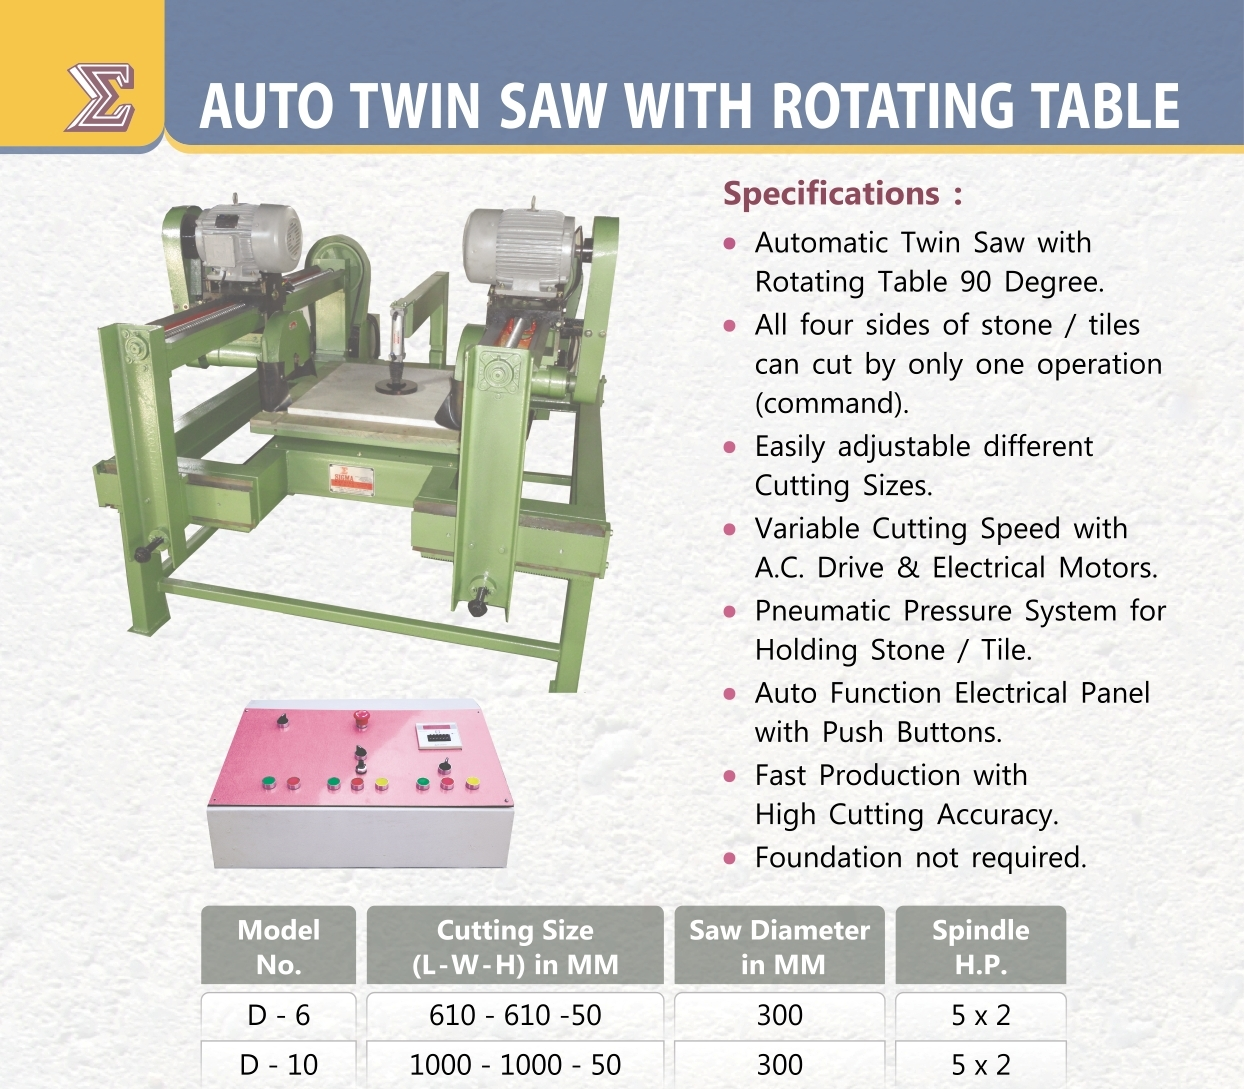 CF SMT Auto Twin Saw with Rotating Table D-6